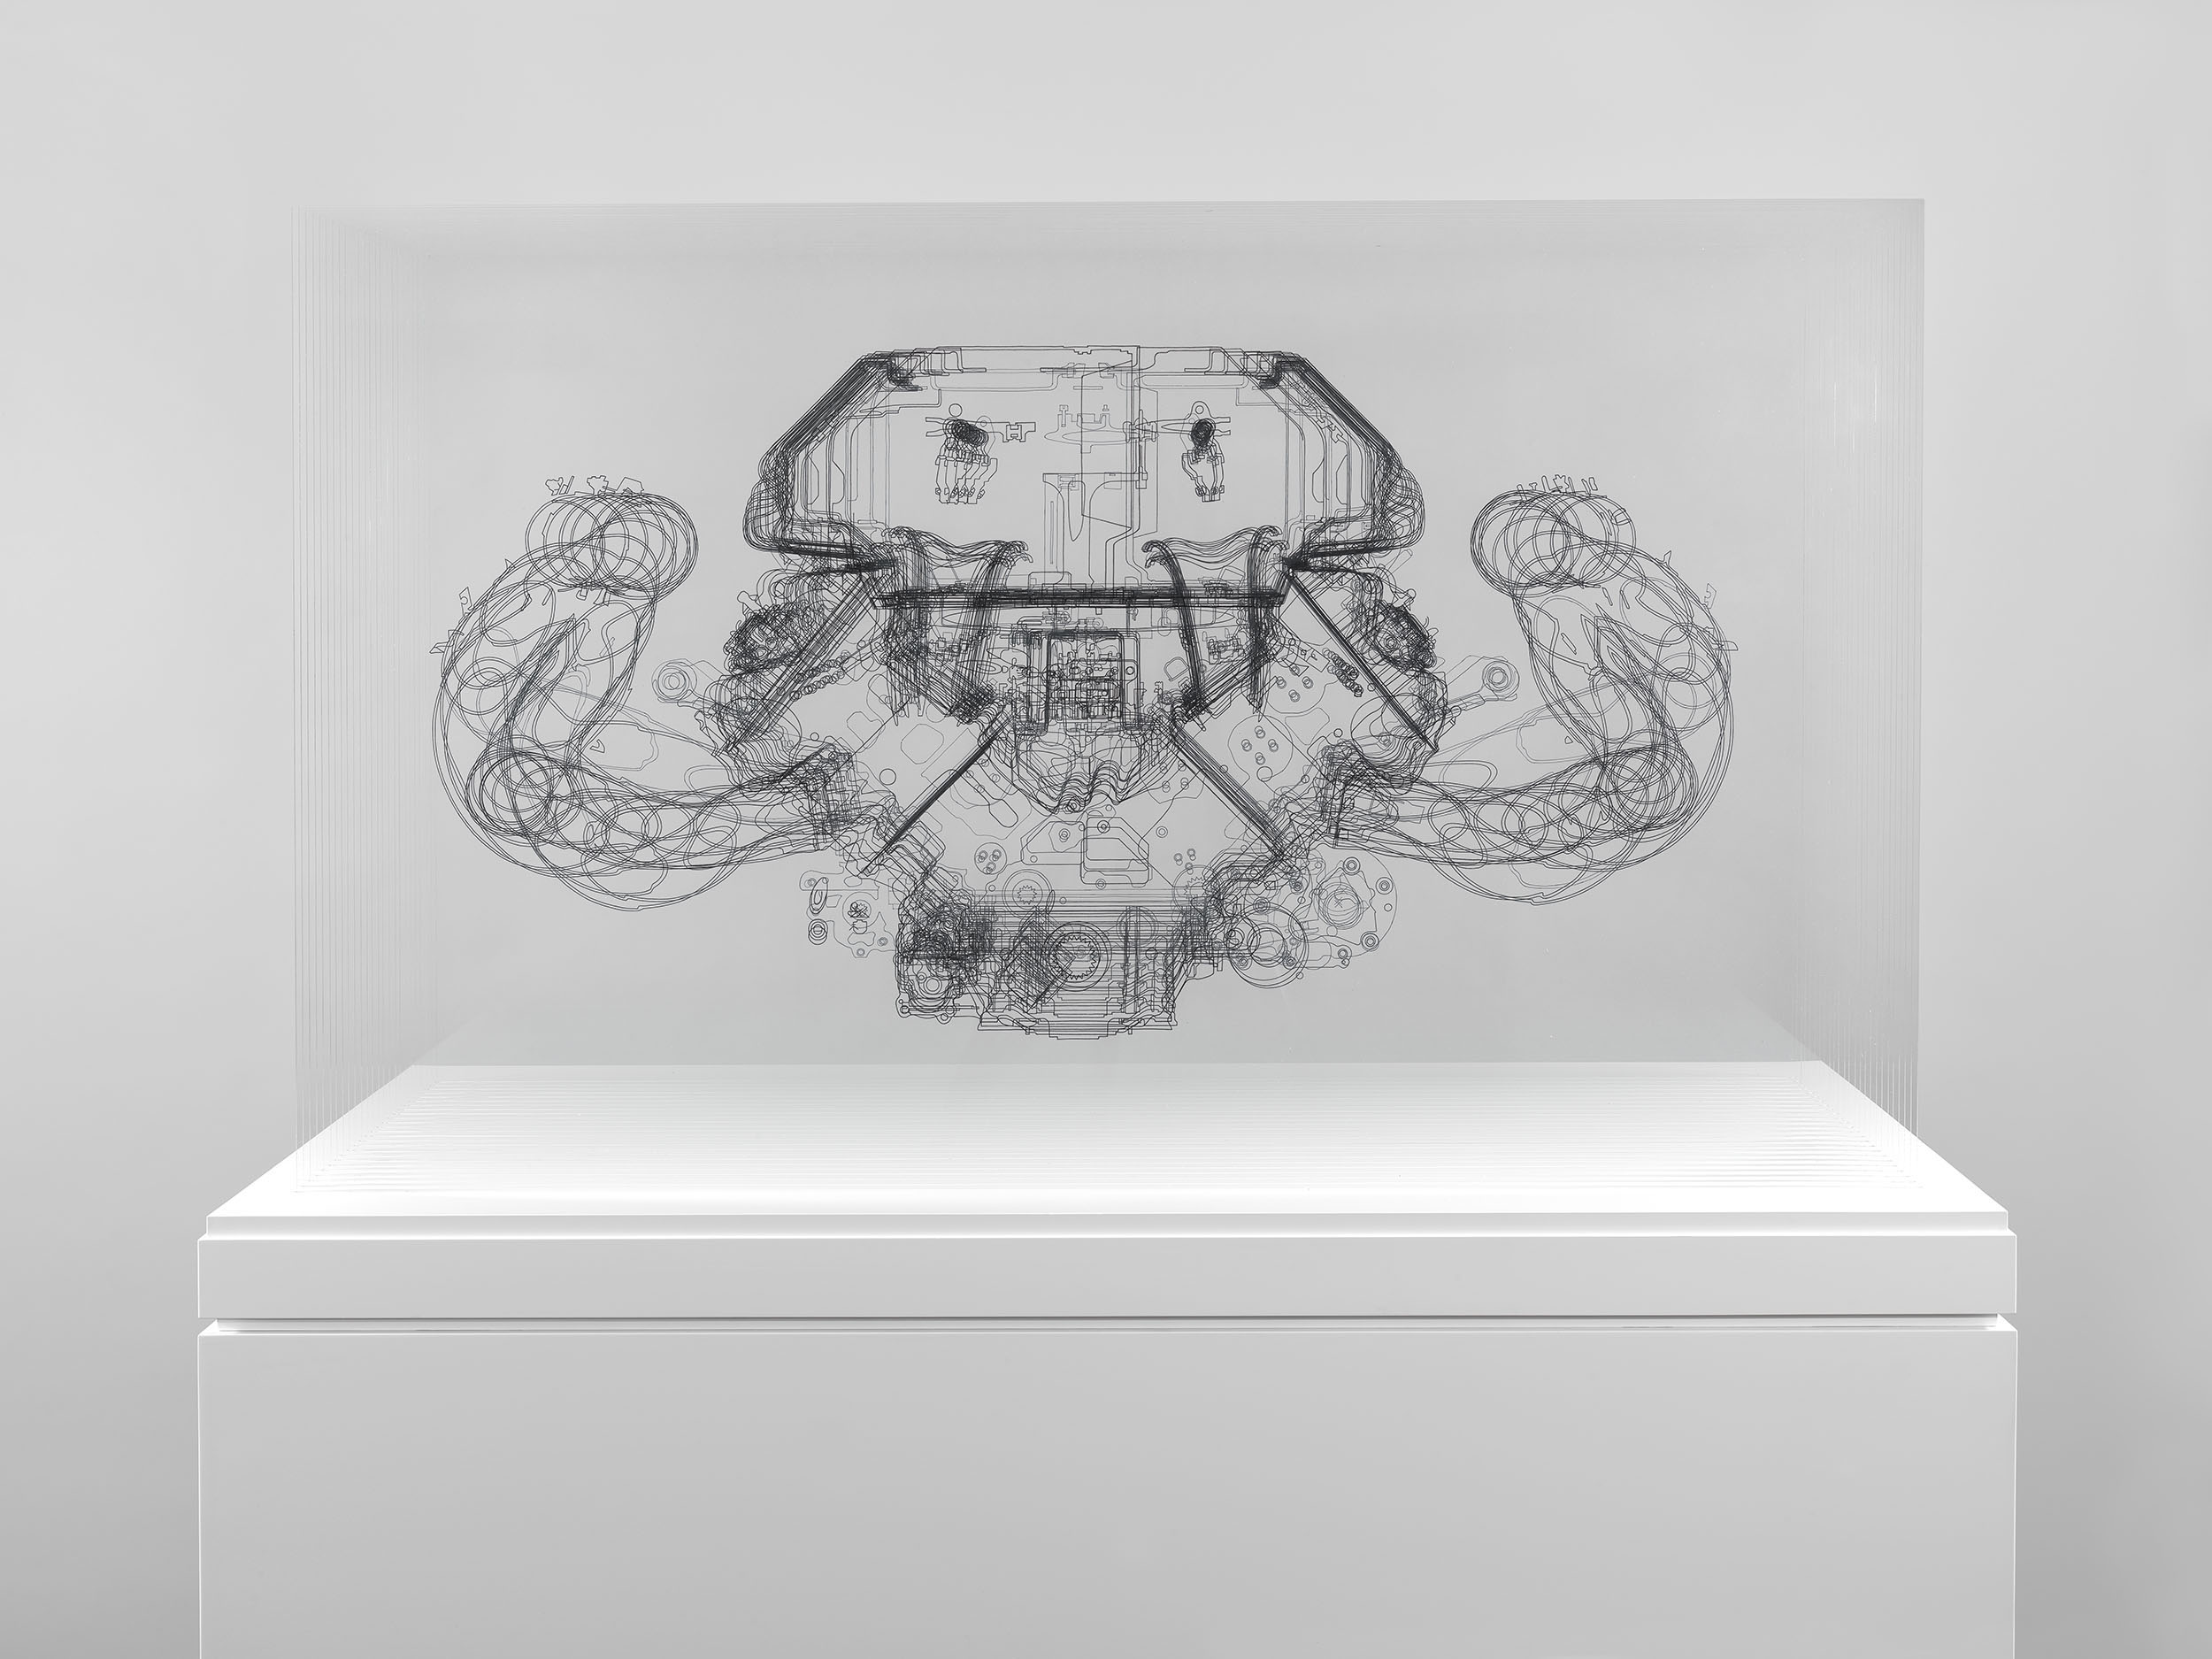 Angela Palmer - Adrenalin - V8 Engine, Ink drawing on 25 sheets of Mirogard glass, 75 x 119 x 72 cm (expo, vue de face)